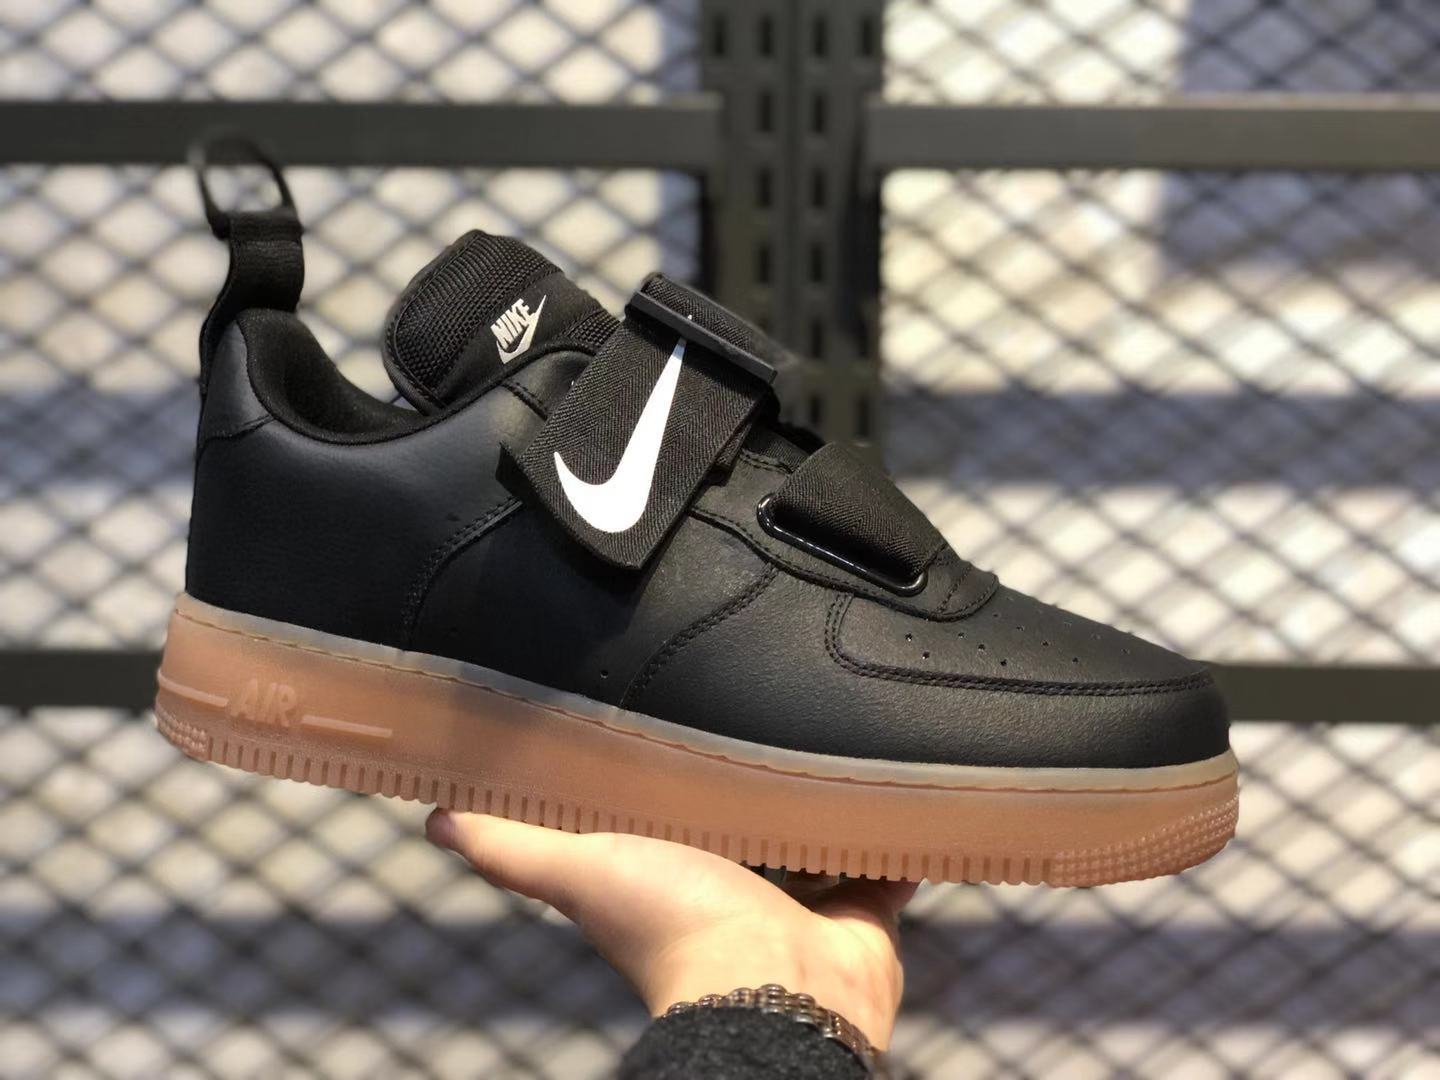 Nike Air Force 1 Low Utility Black/Medium Brown AO1531-002 Free Shipping